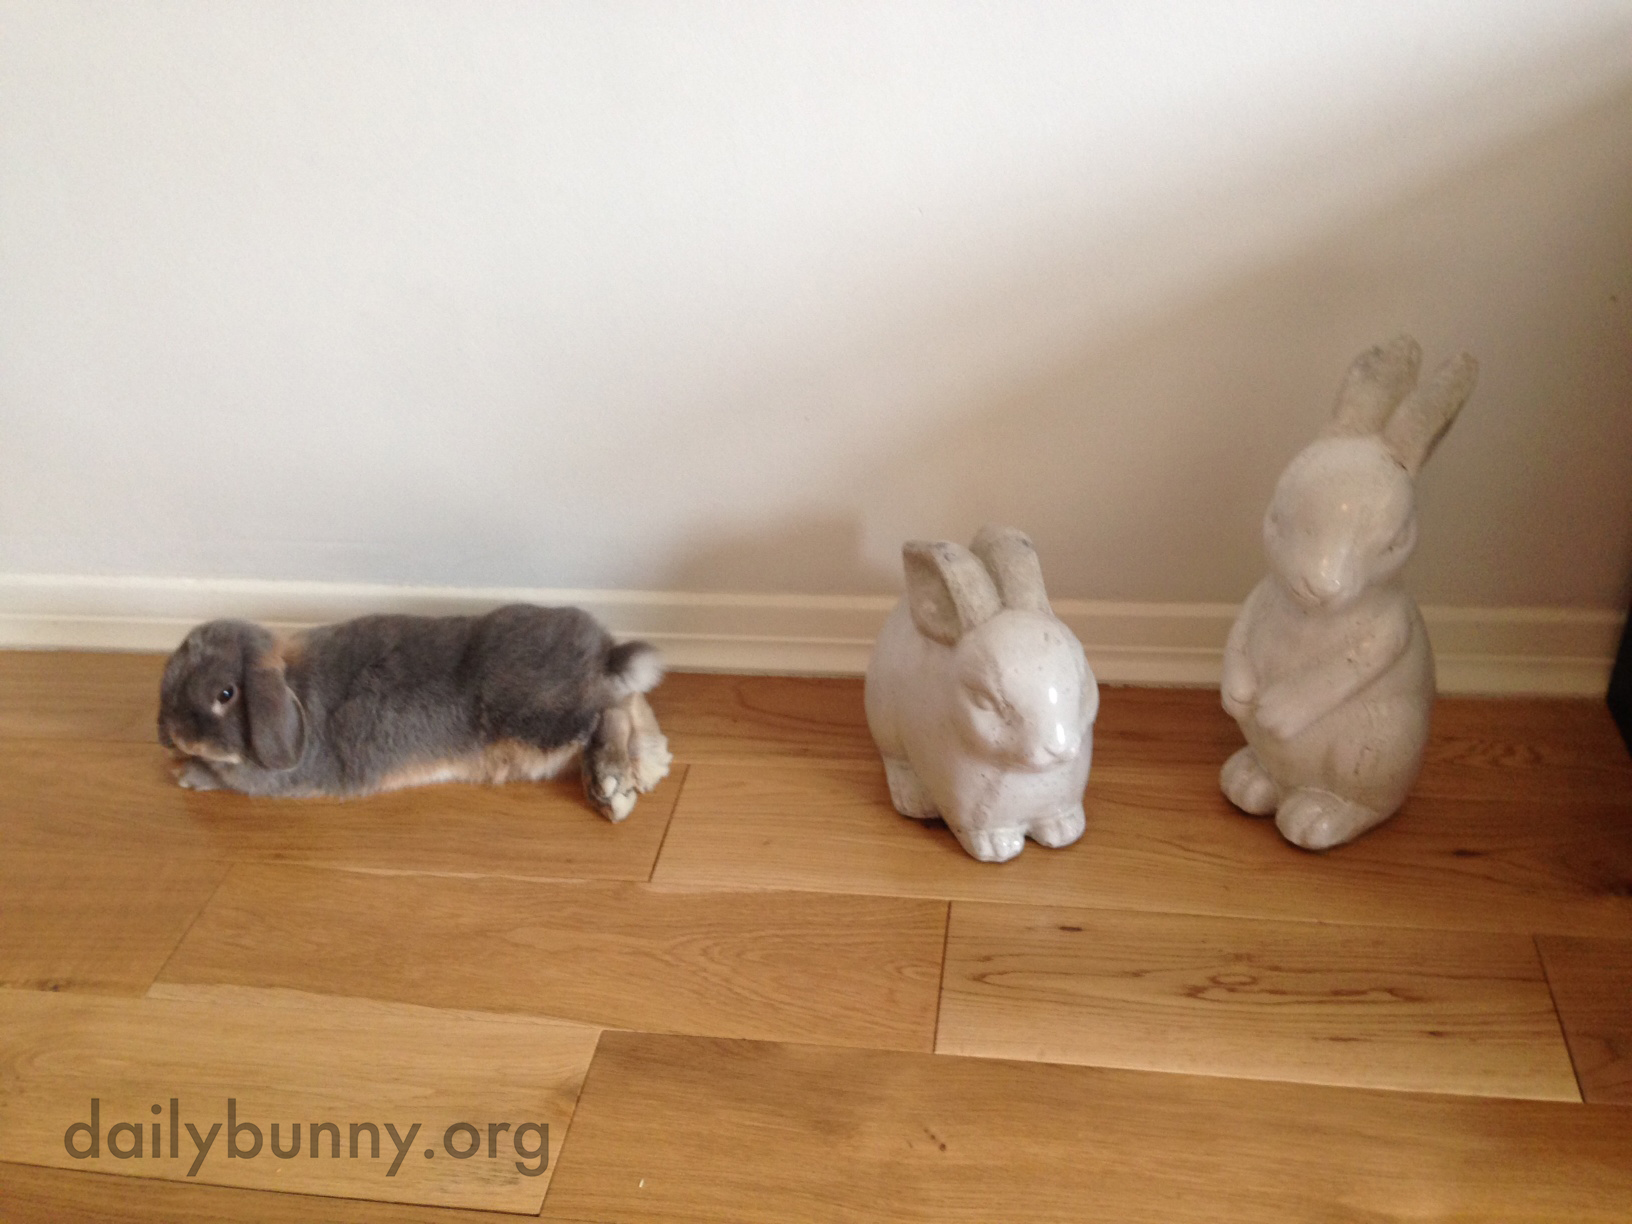 Can't a Grumpy Bunny Just Lie Down without a Human Ooh-ing and Aww-ing and Taking Pictures? 4